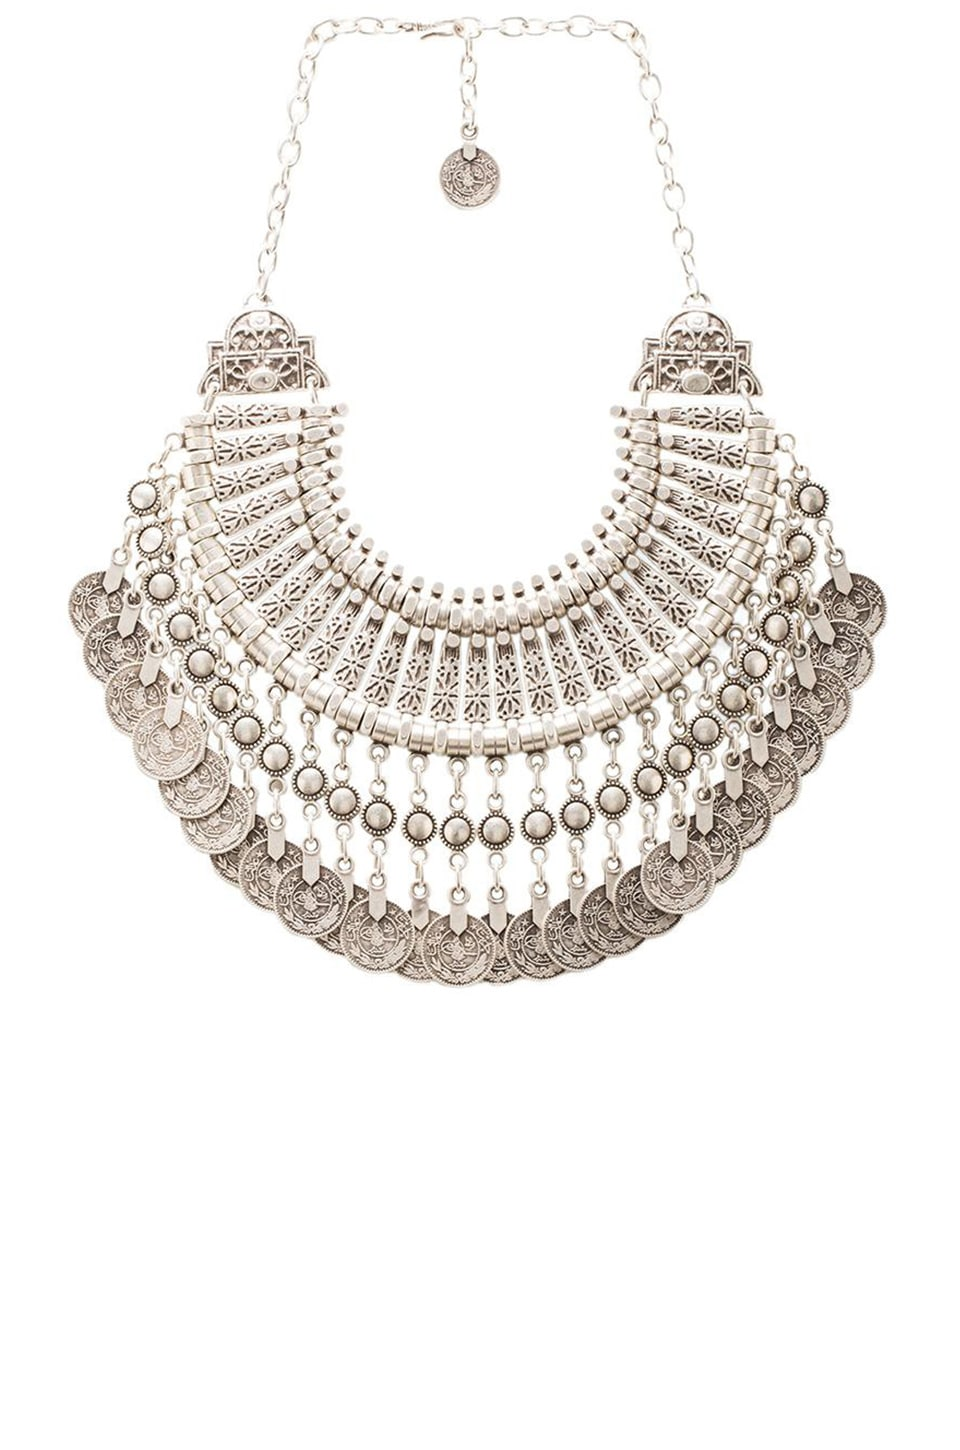 Natalie B Fit for a Queen Necklace